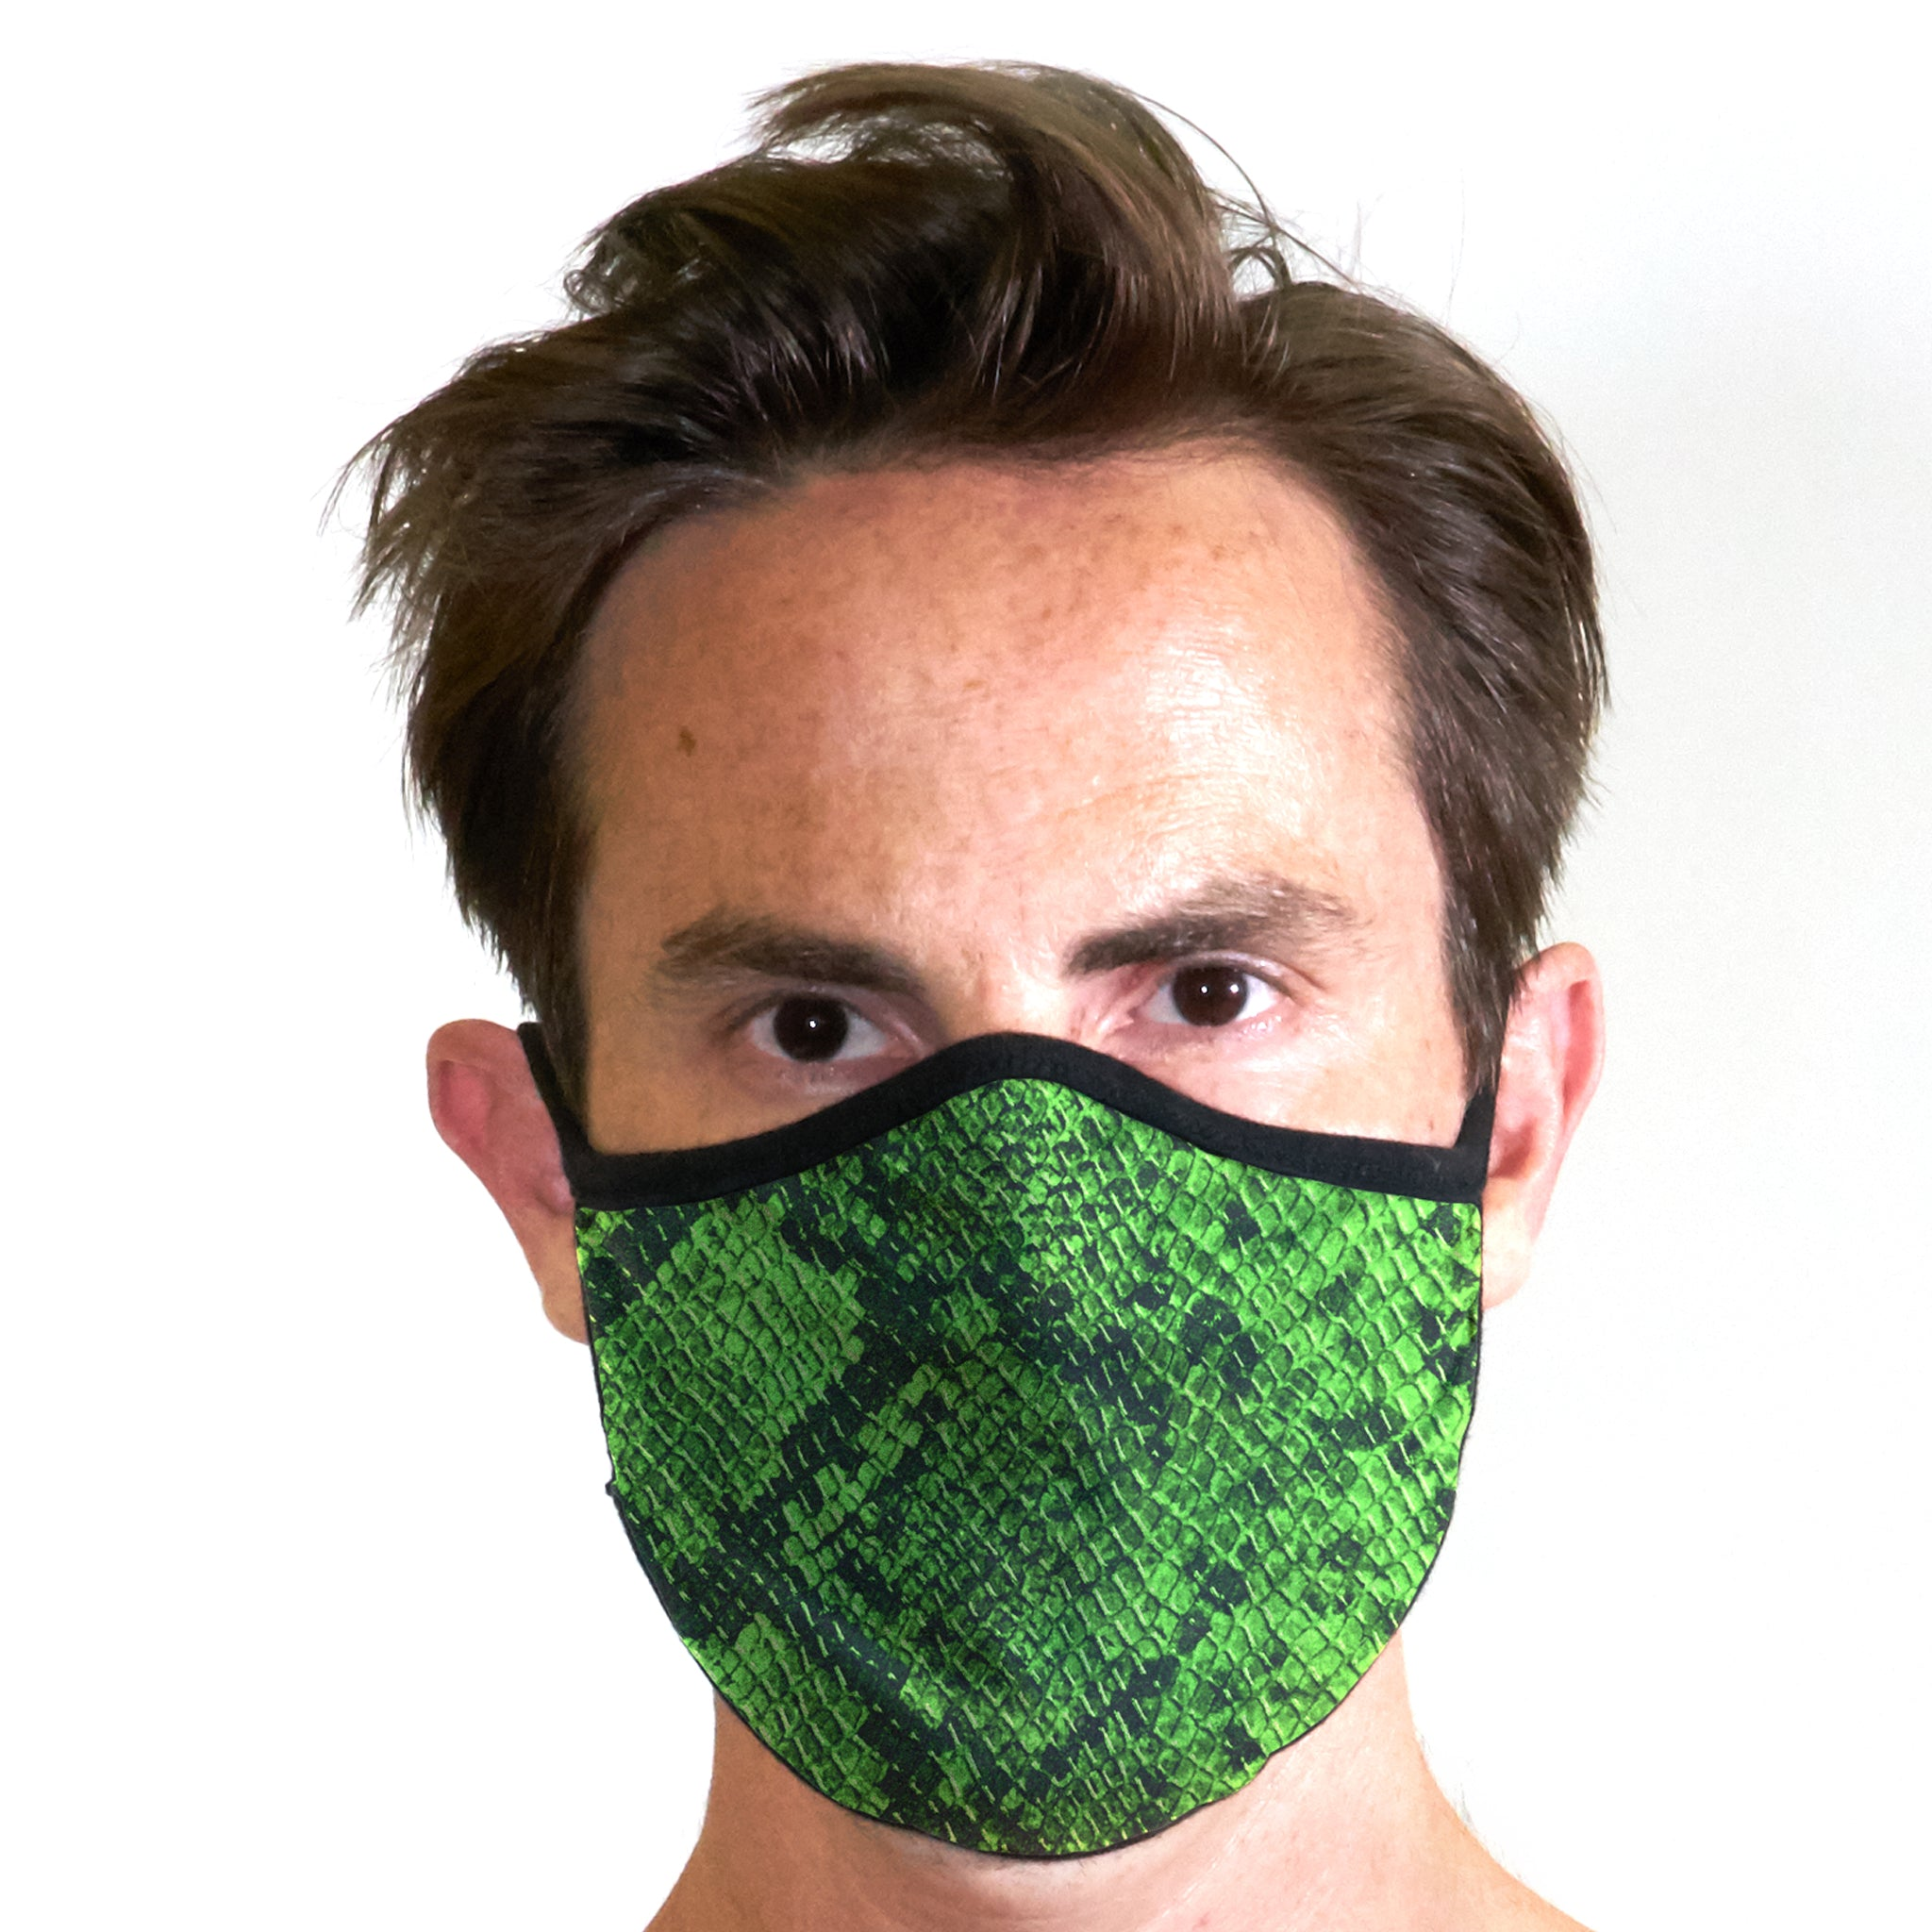 Snake Face Cover & Underwear Bundle - Related Garments